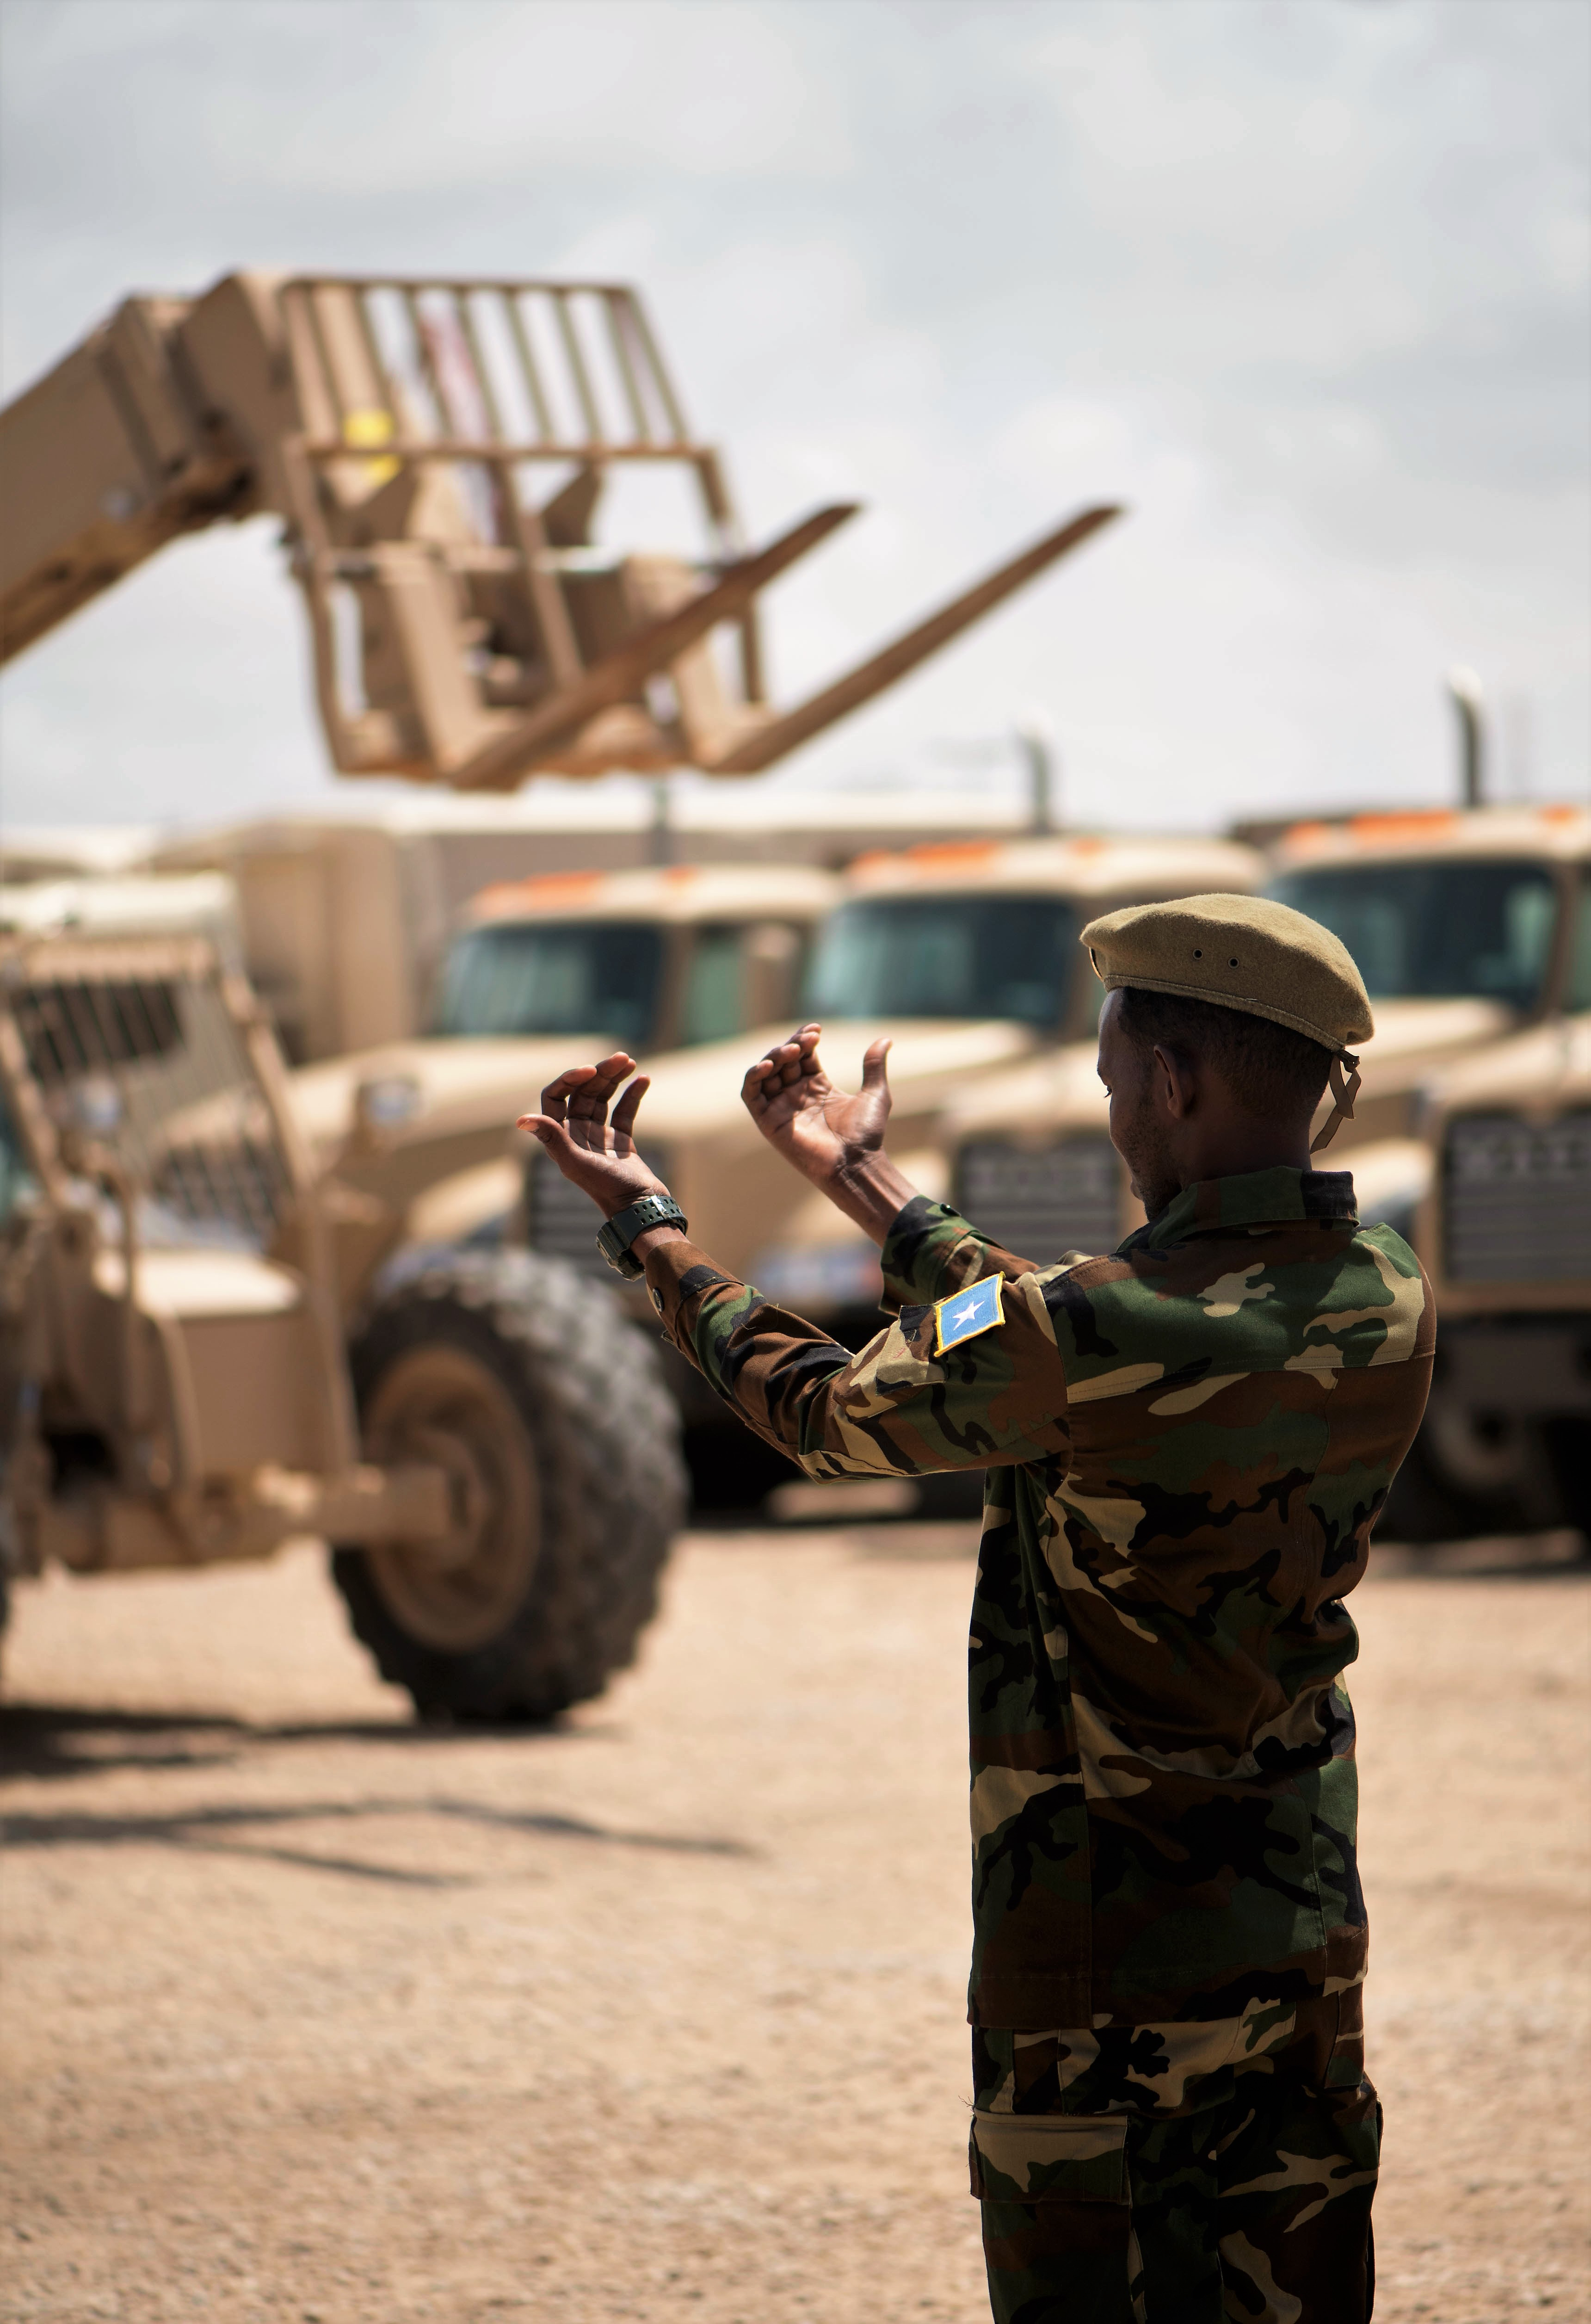 A Somali national army soldier gives directions to a forklift operator during a skills demonstration during a logistics course graduation ceremony.   Soldiers from Somali's special forces DANAB battalion spent 14 weeks training with the U.S. 10th Mountain division on the importance of logistical operation as well as the operation and maintenance of heavy equipment.  (Photo by MC2 (SW/AW) Evan Parker. Released)